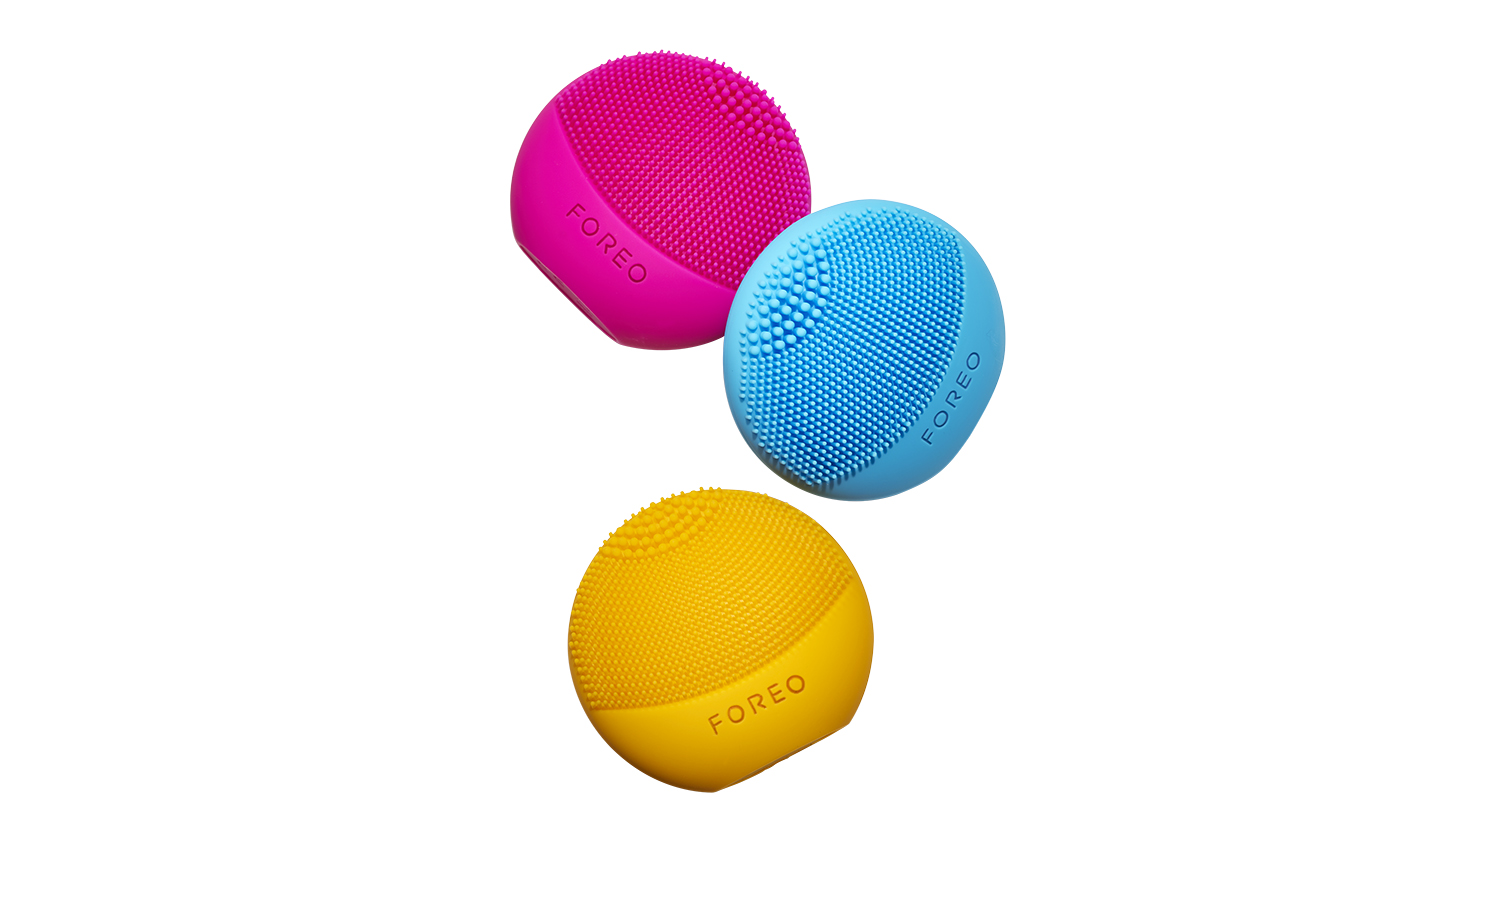 Luna Play by Foreo Cleansing Brushes